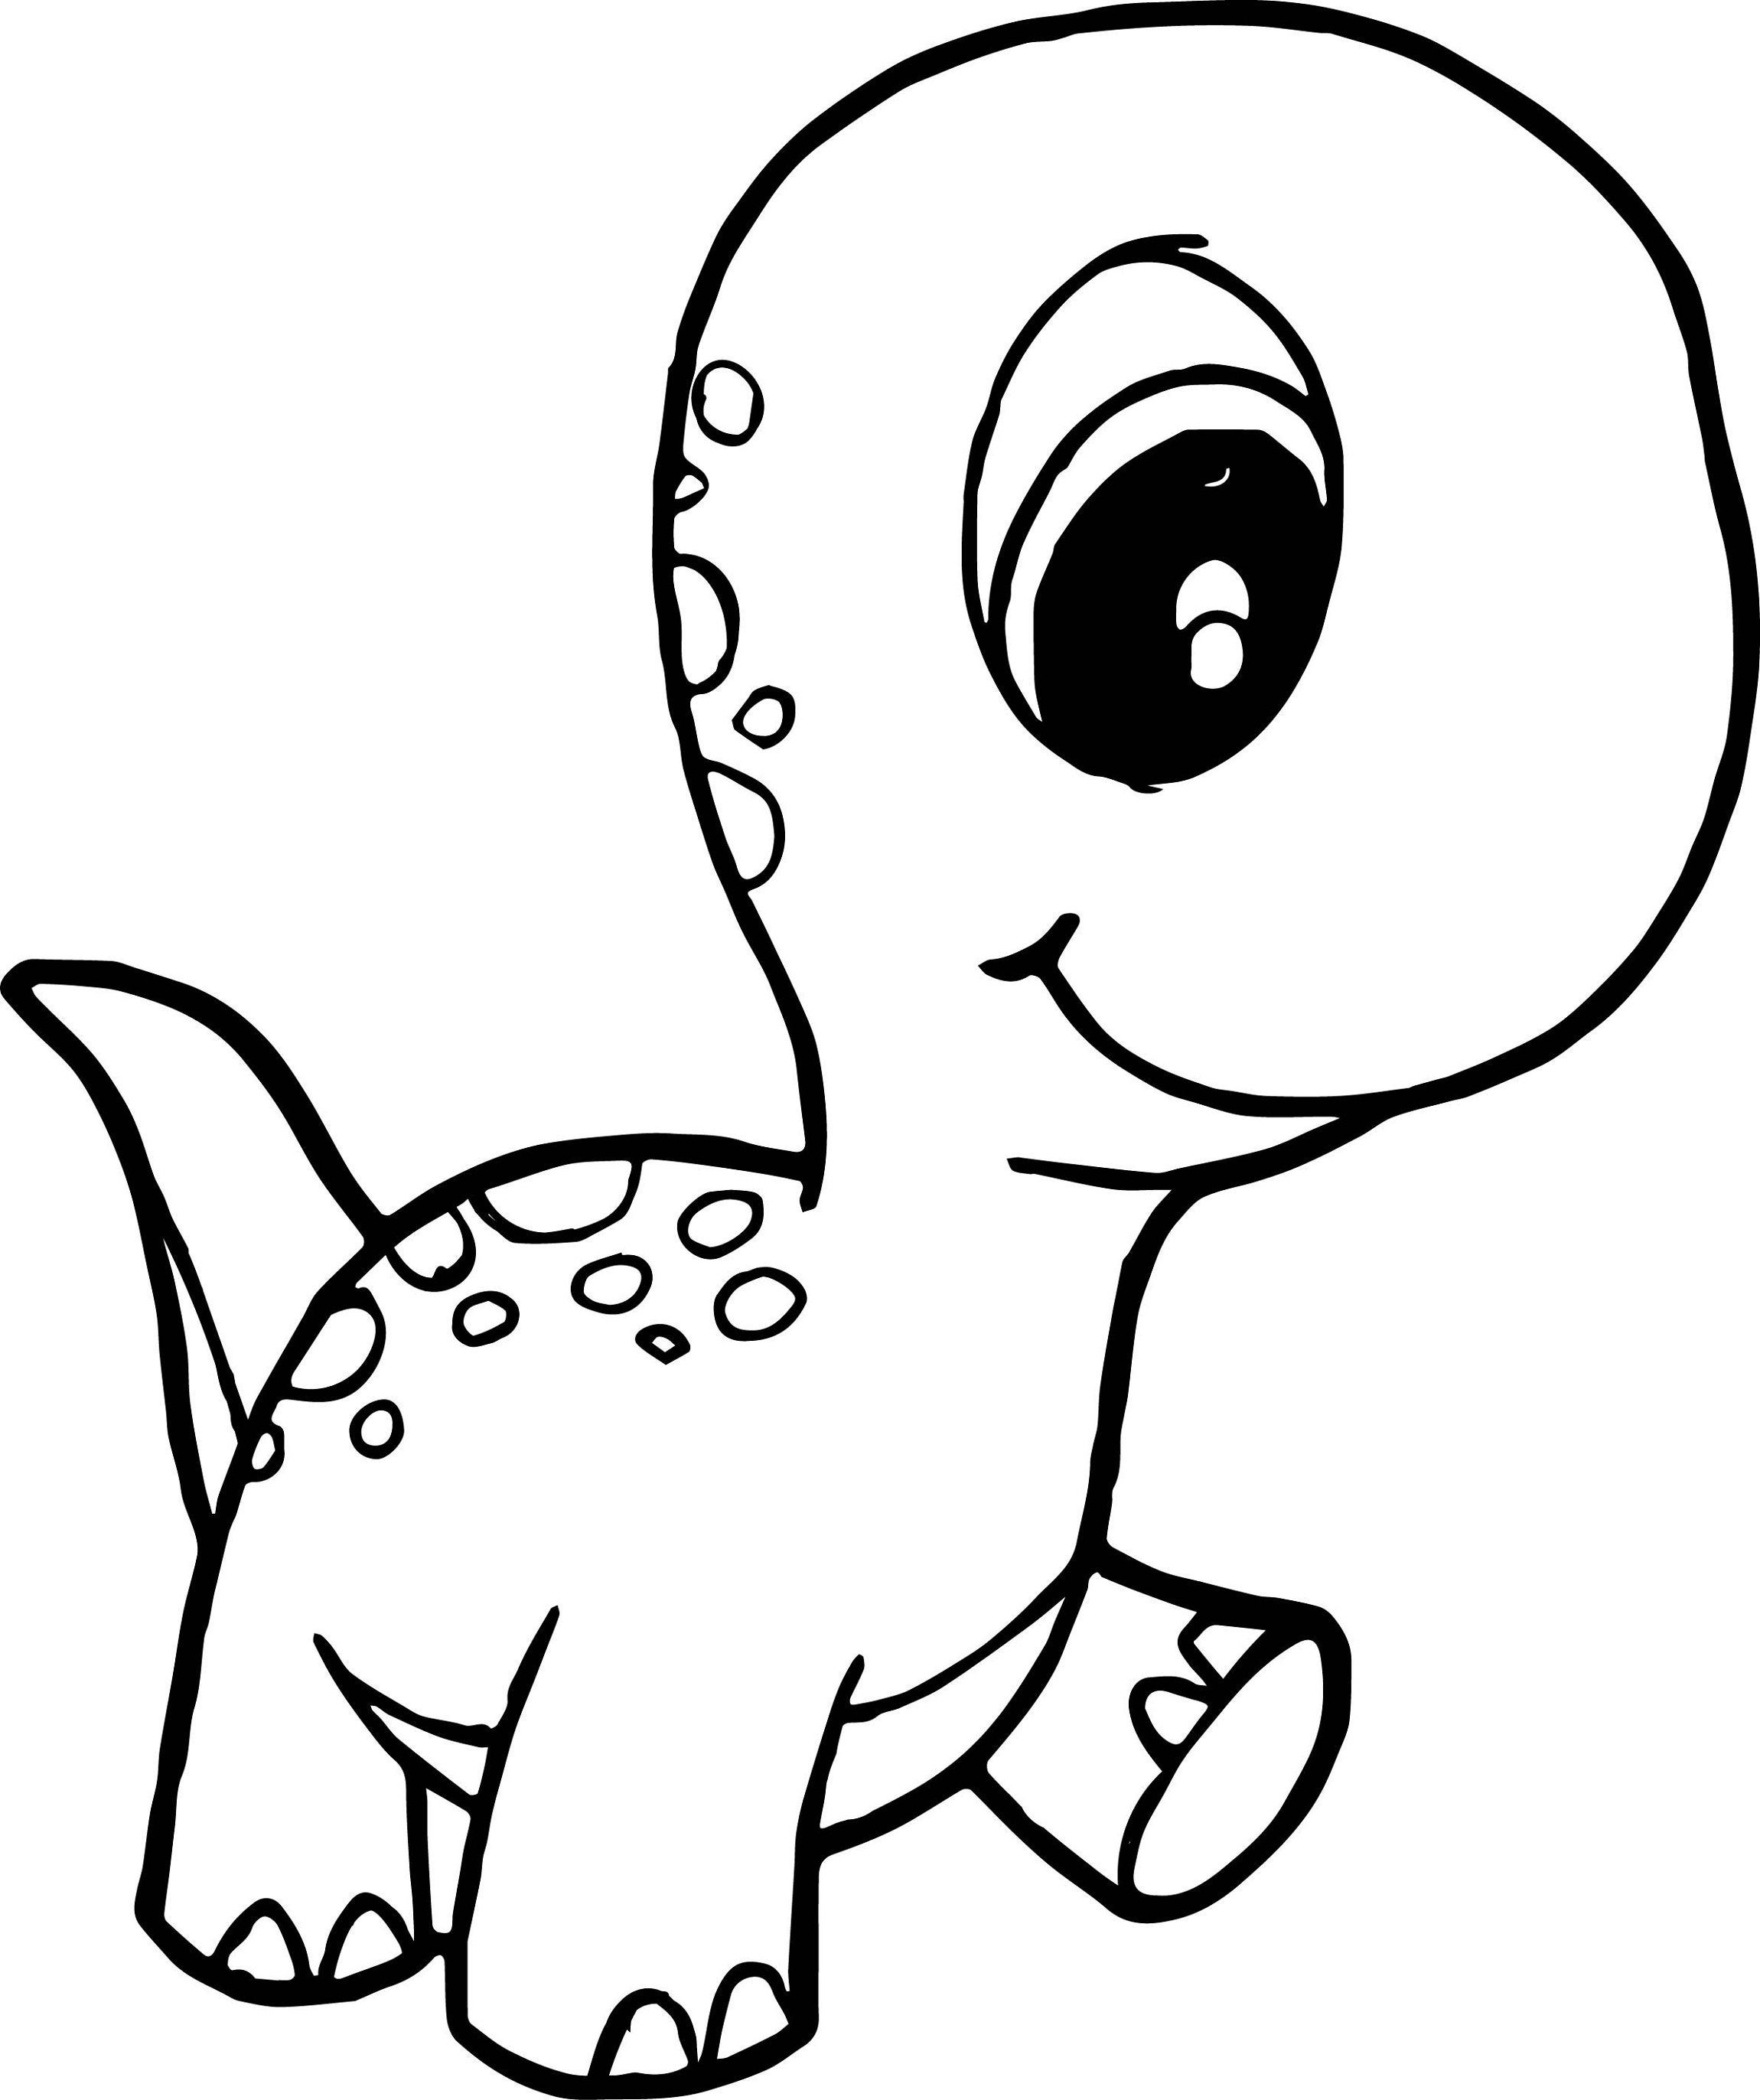 cute baby animal colouring pictures baby animals coloring pages getcoloringpagescom cute pictures animal baby colouring